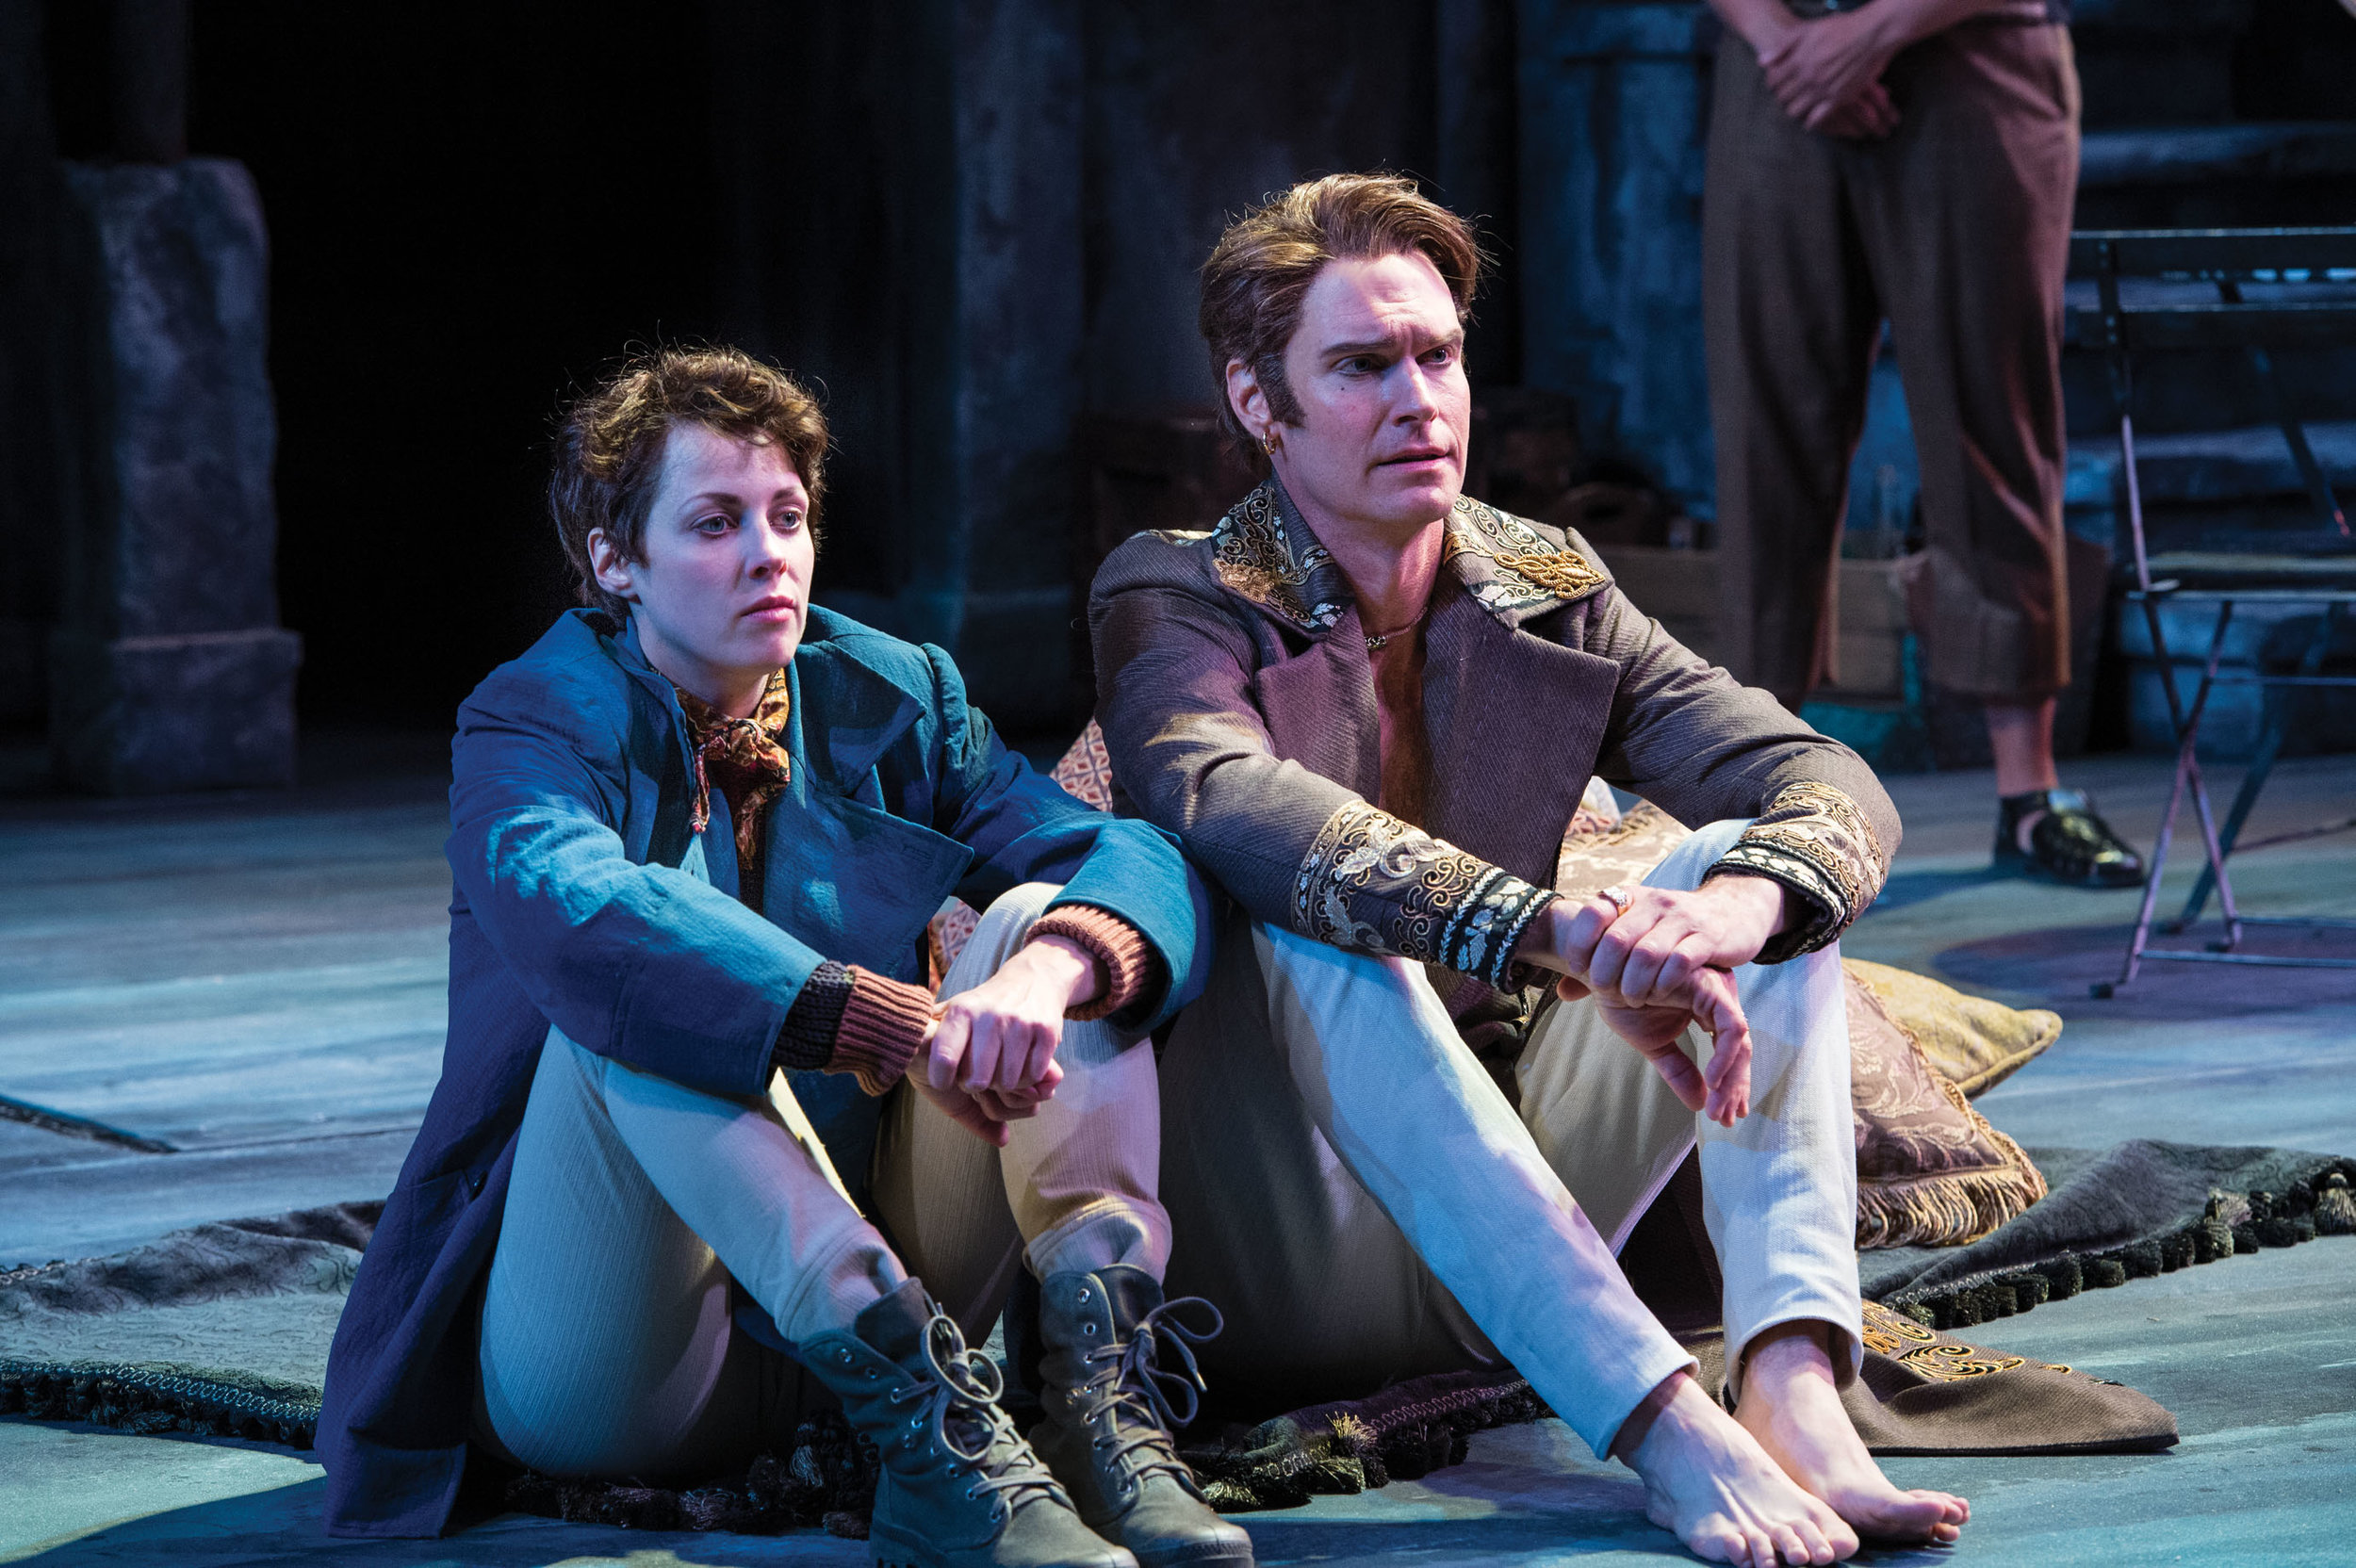 Nell Geisslinger (left) as Viola (disguised as Cesario) and Grant Goodman as Orsino in  Twelfth Night,  2014 .